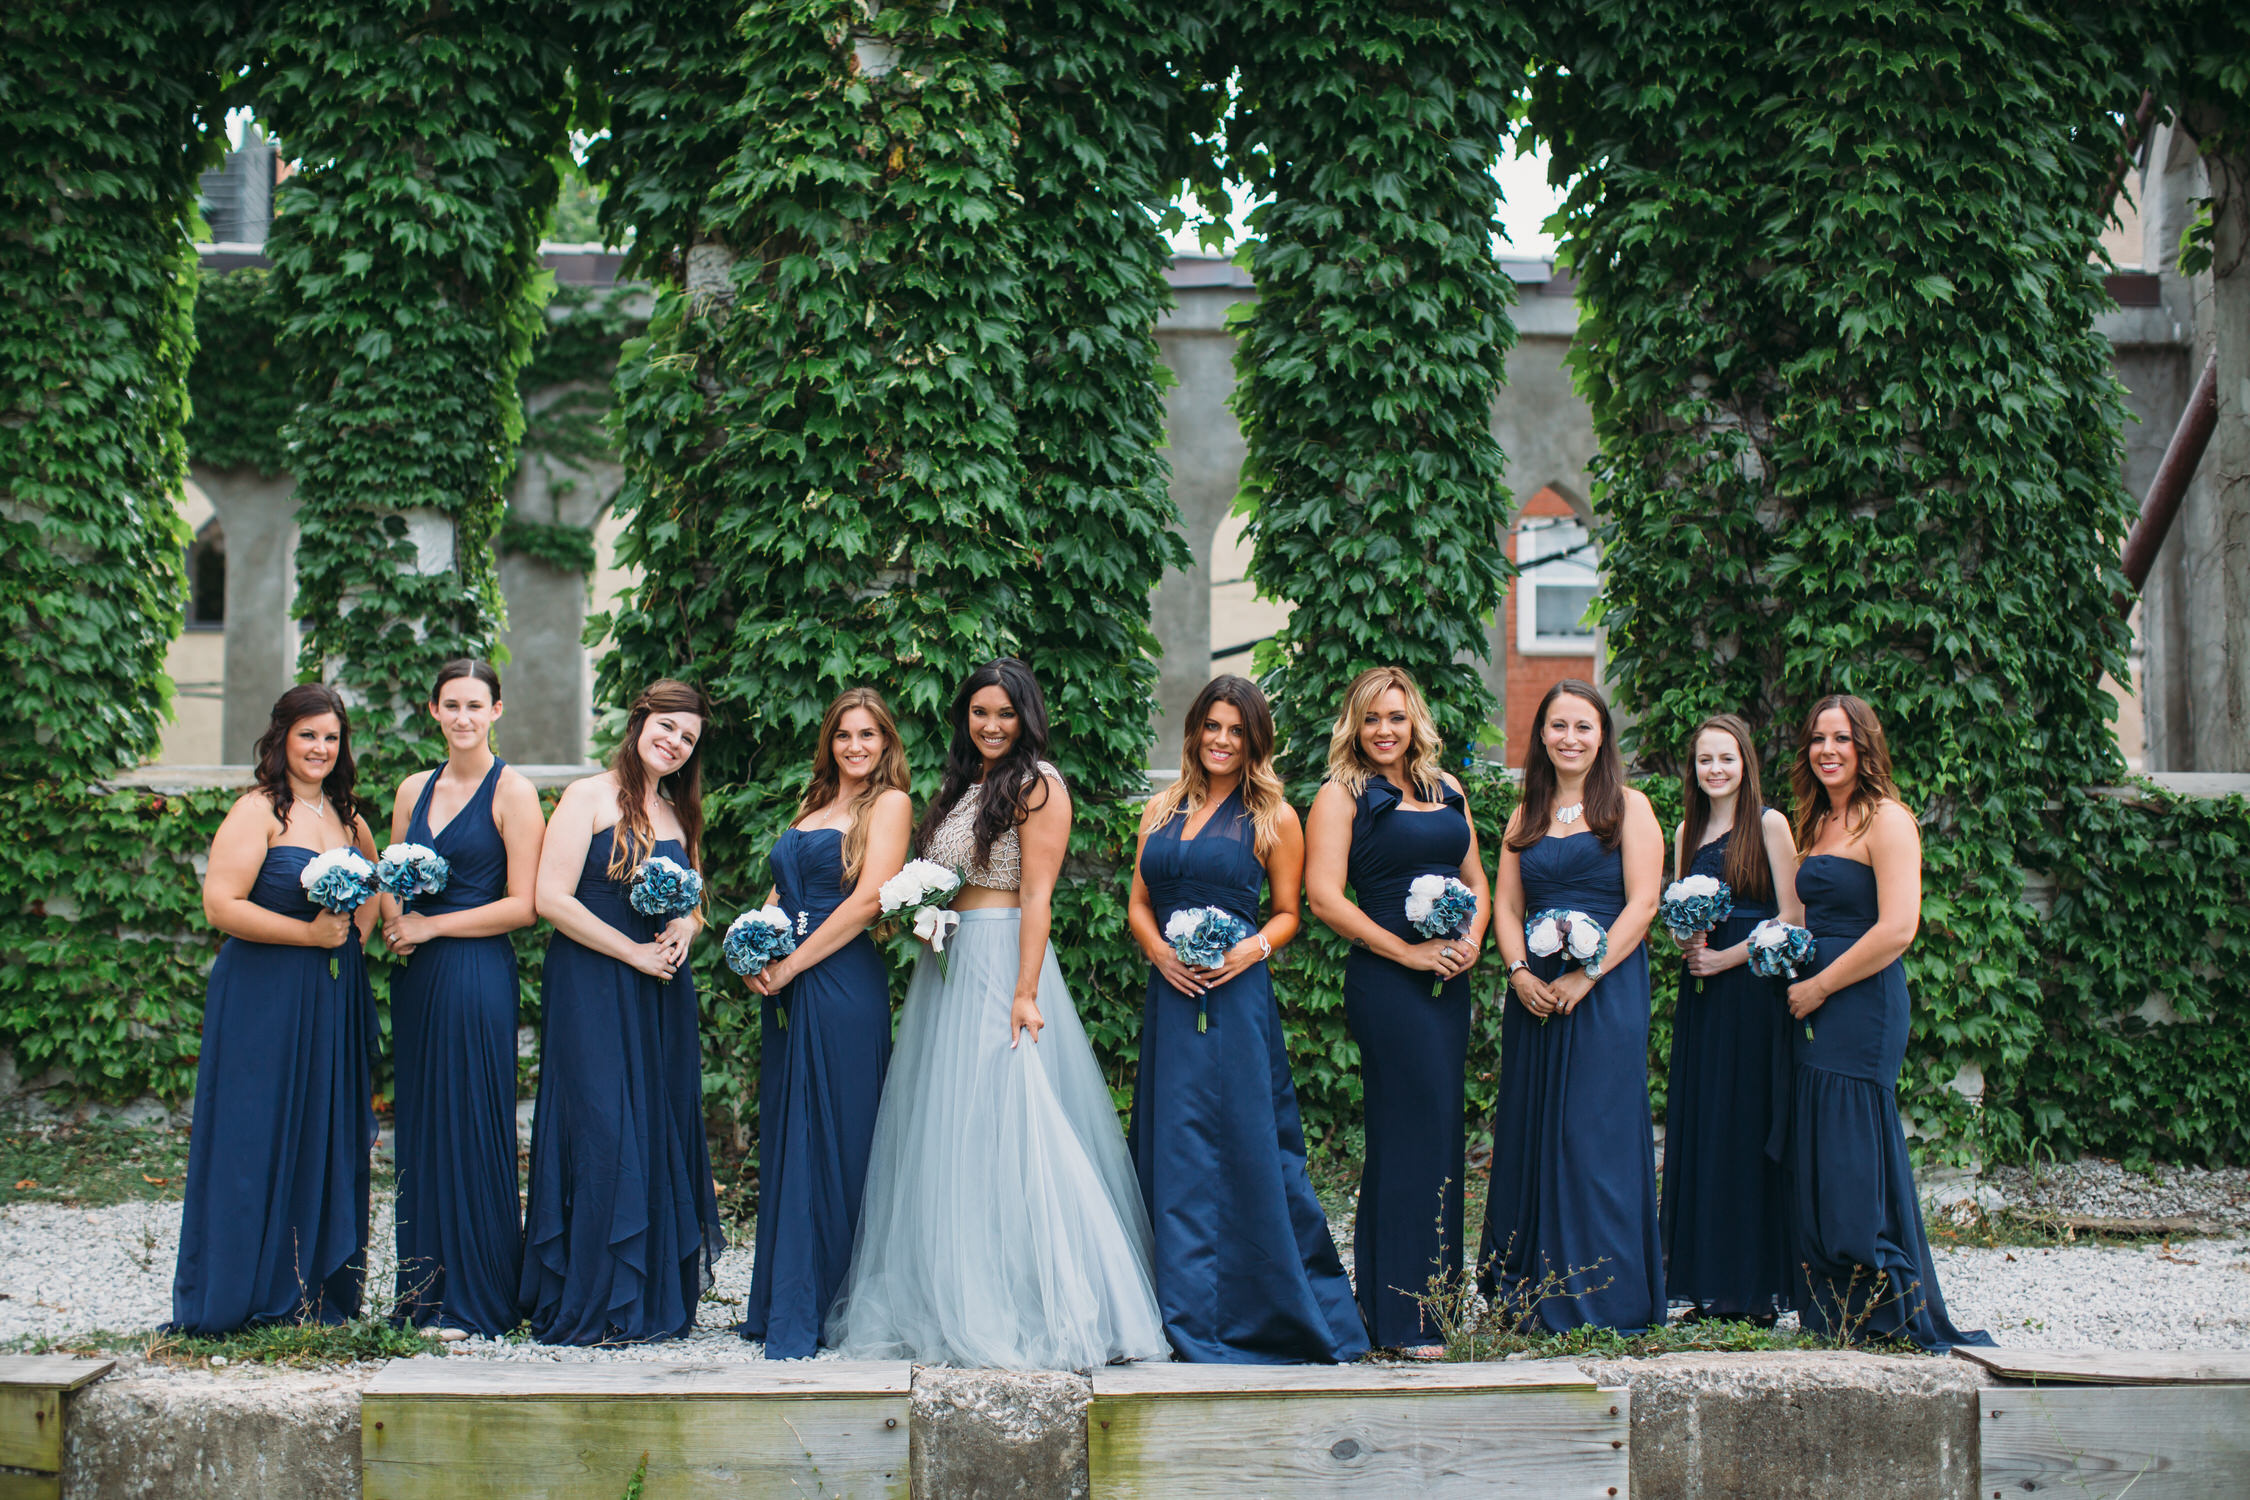 Wedding party photos, group photos at a wedding, relaxed wedding photos, St Louis Wedding Photographer, bride in blue wedding dress,